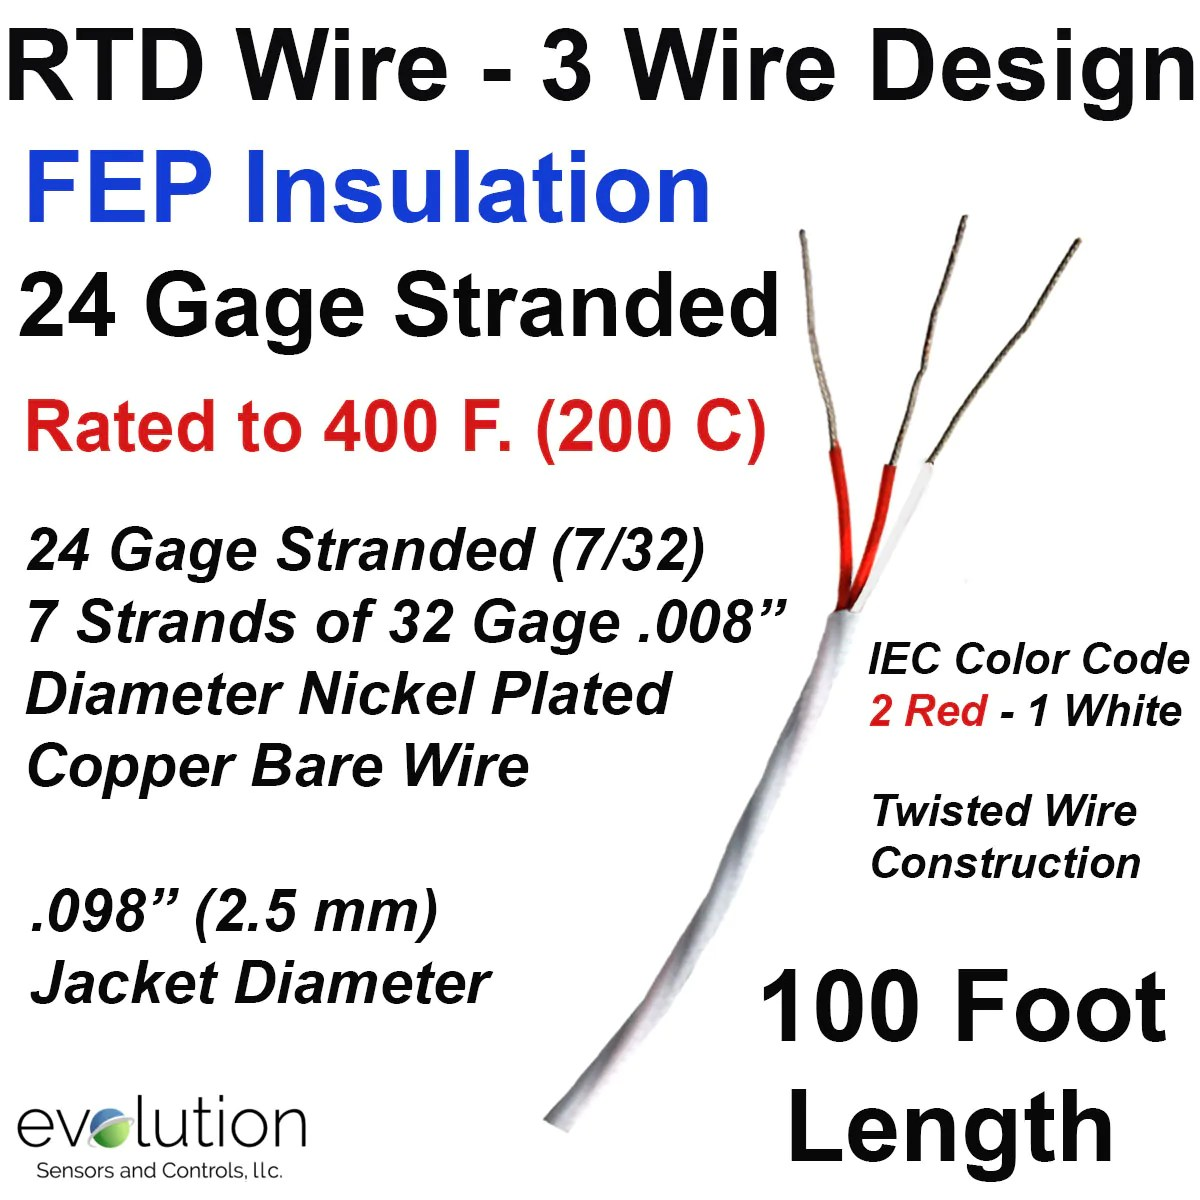 hight resolution of rtd wire 3 wire design 24 gage stranded with fep insulation 100 2 wire rtd color